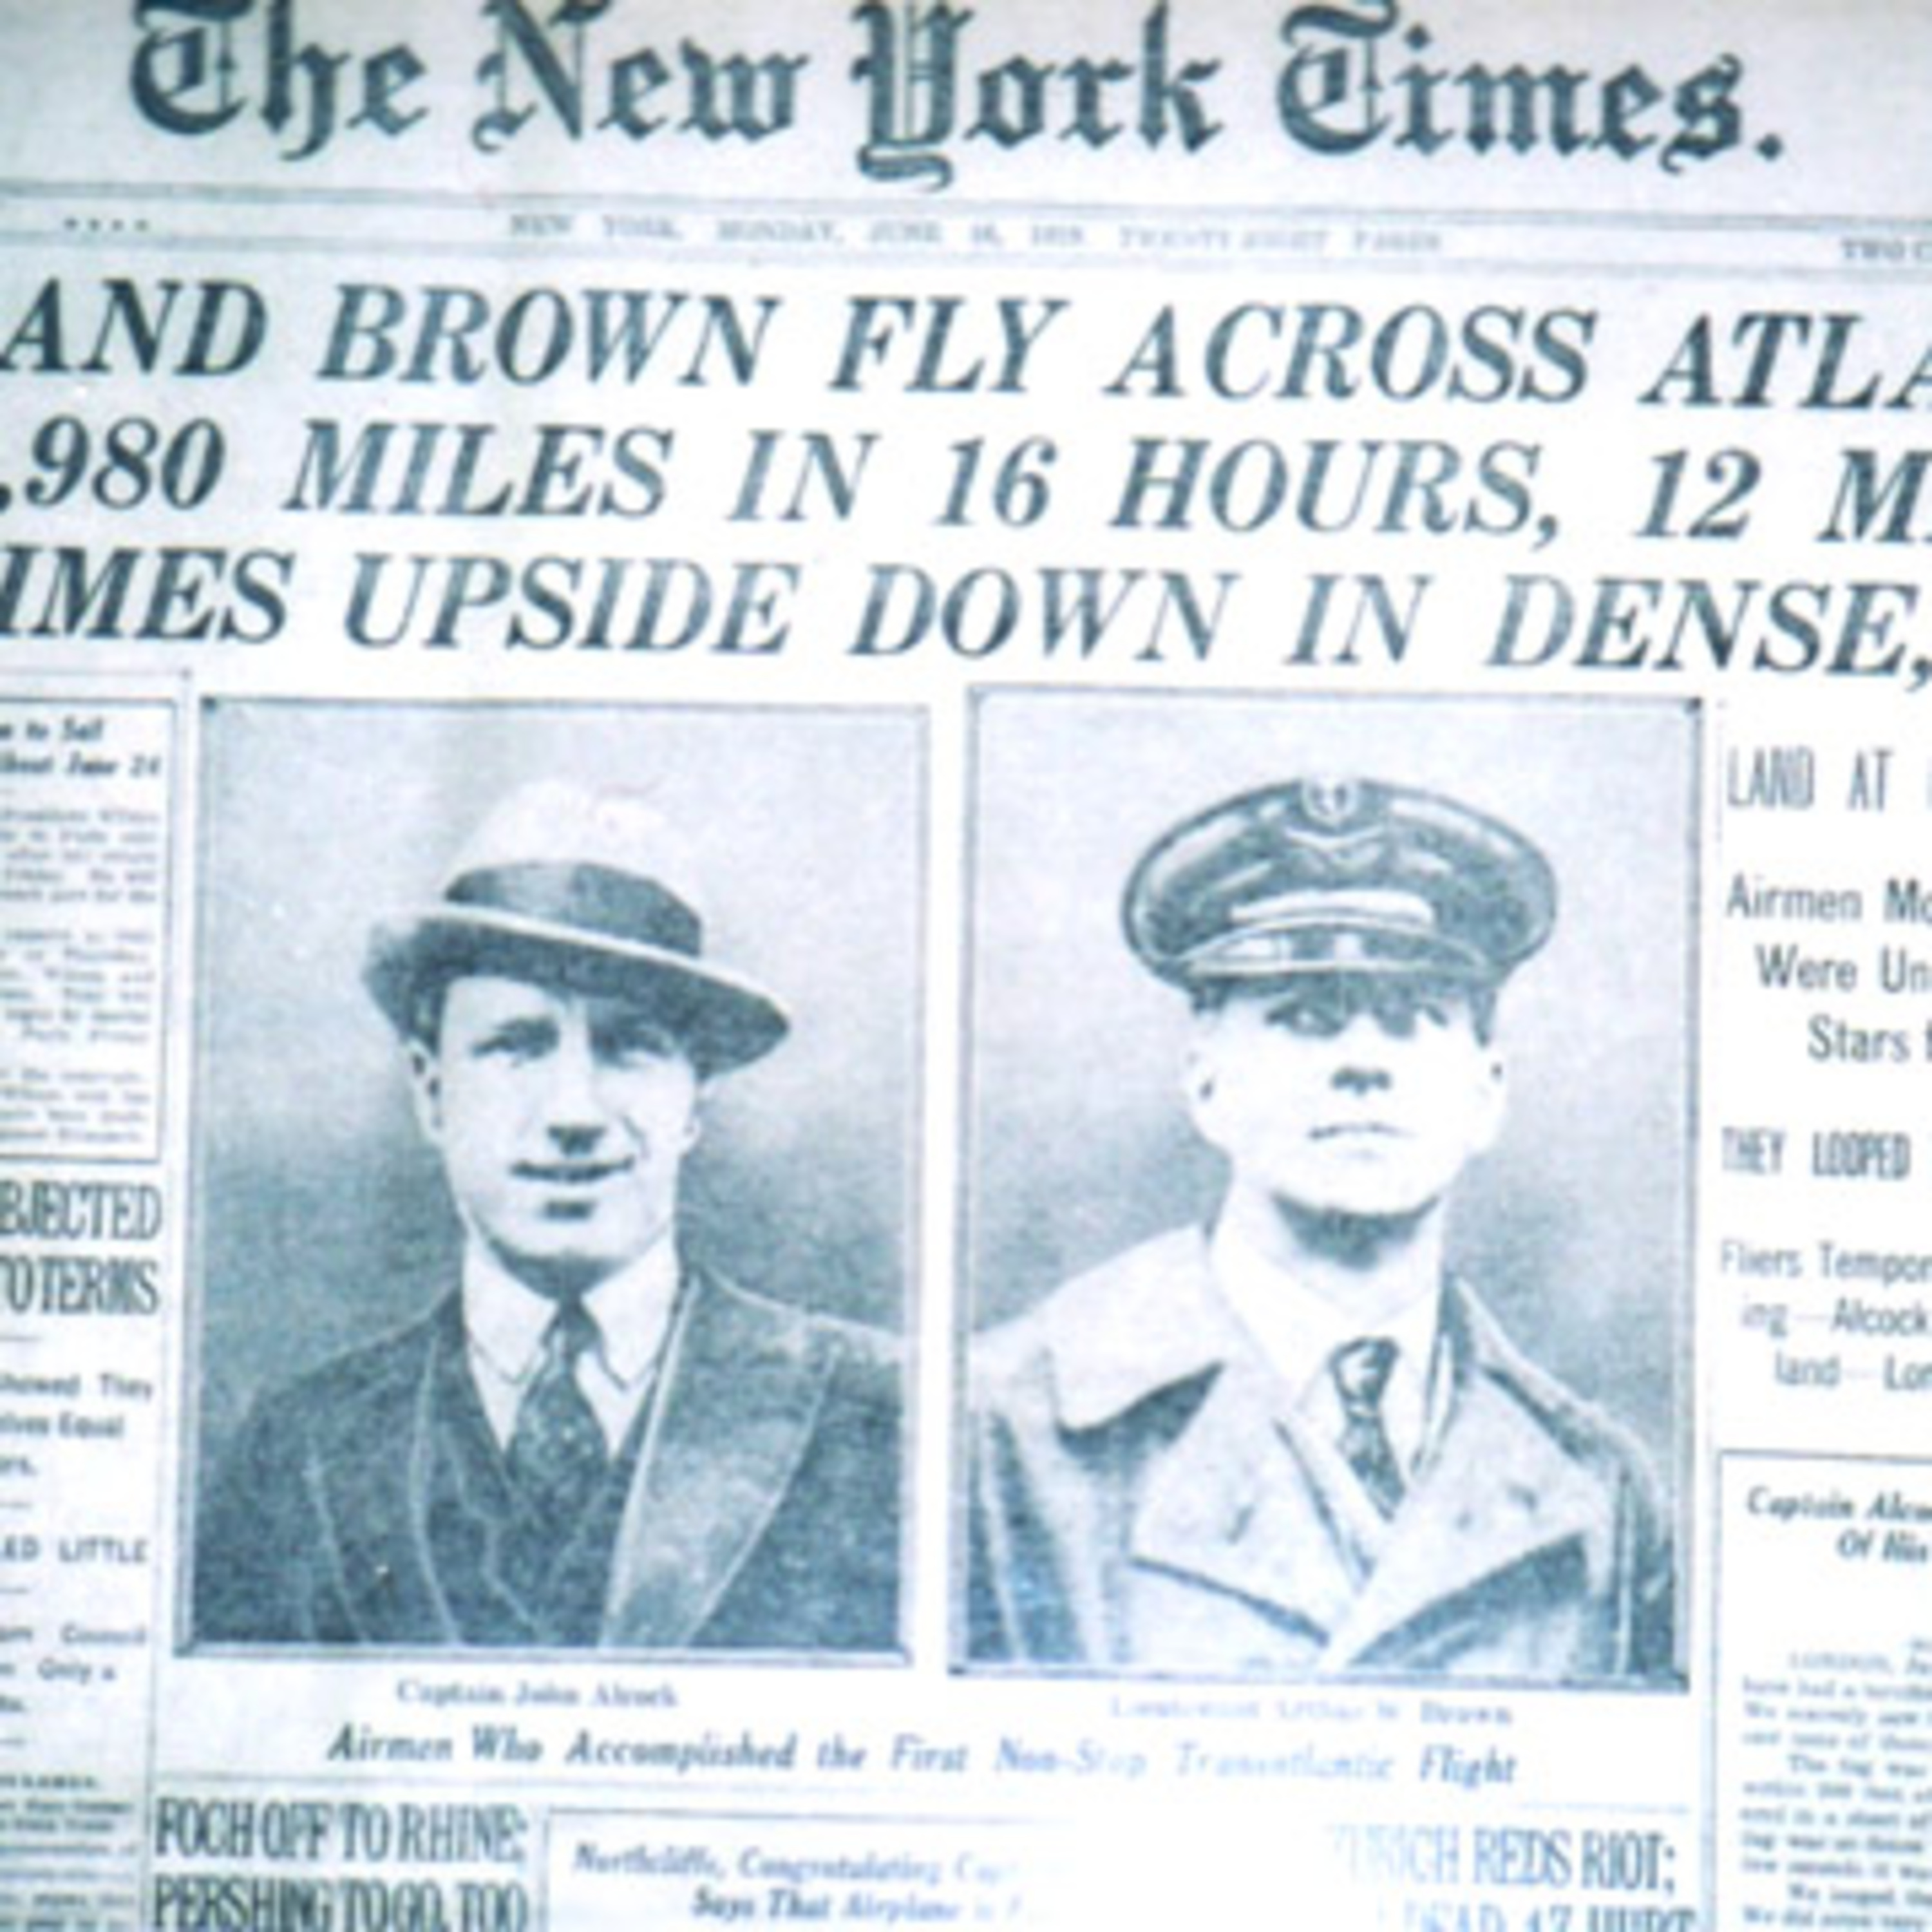 The FIrst Nonstop Transatlantic Flight from Newfoundland to Ireland - John Alcock and Arthur Brown